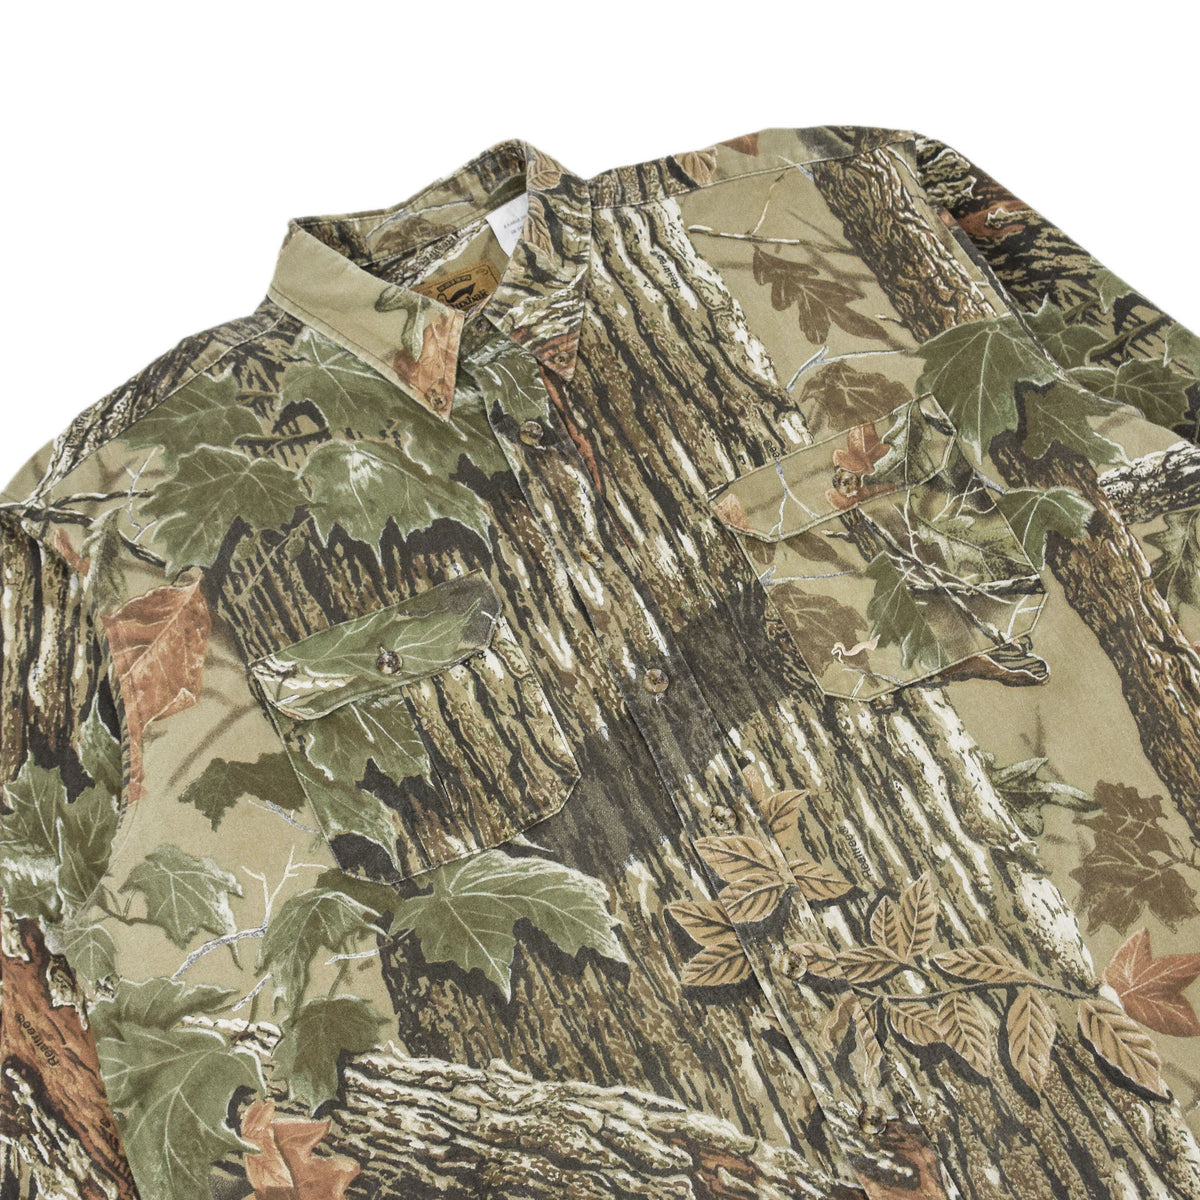 Vintage Duxbak Tree Leaf Camo Hunting Shooting Cotton Long Sleeve Shirt XL chest